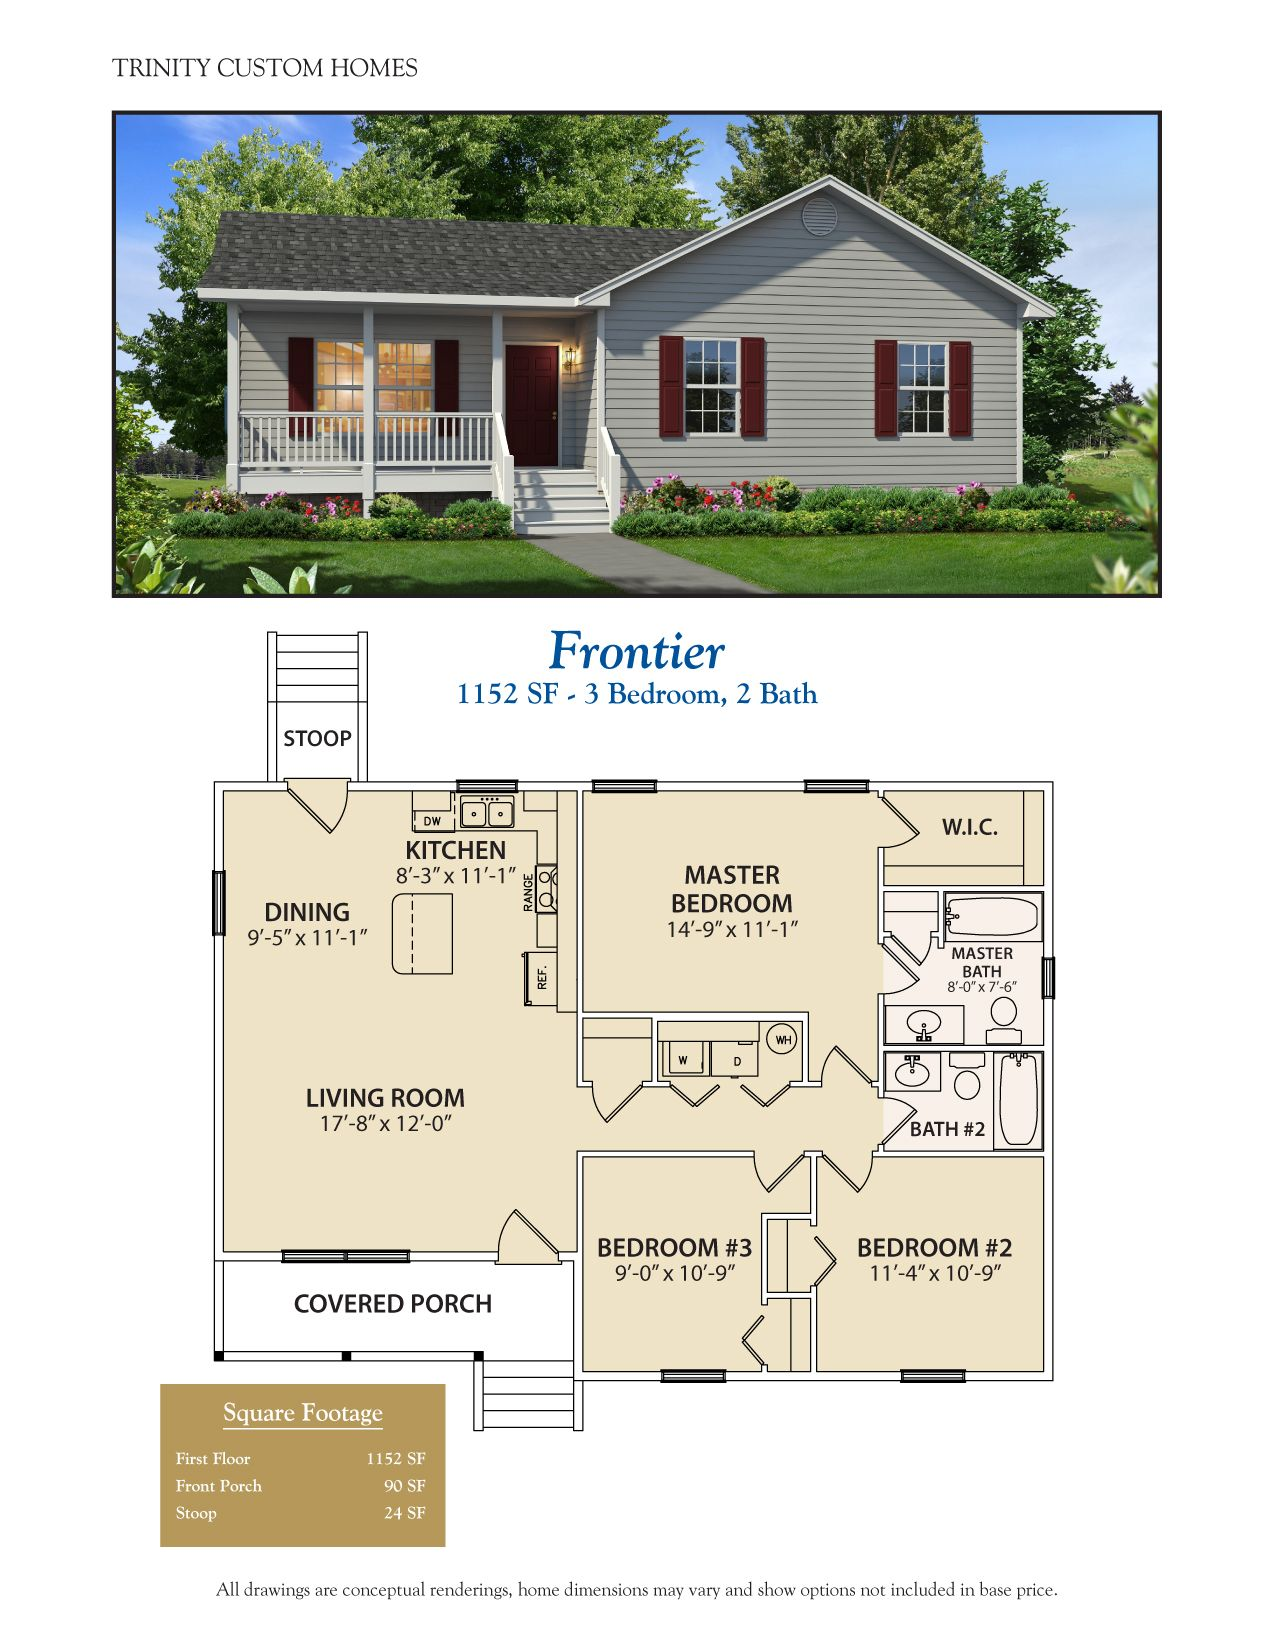 take a look at all of trinity custom homes georgia floor plans here we have - Custom Small Home Plans